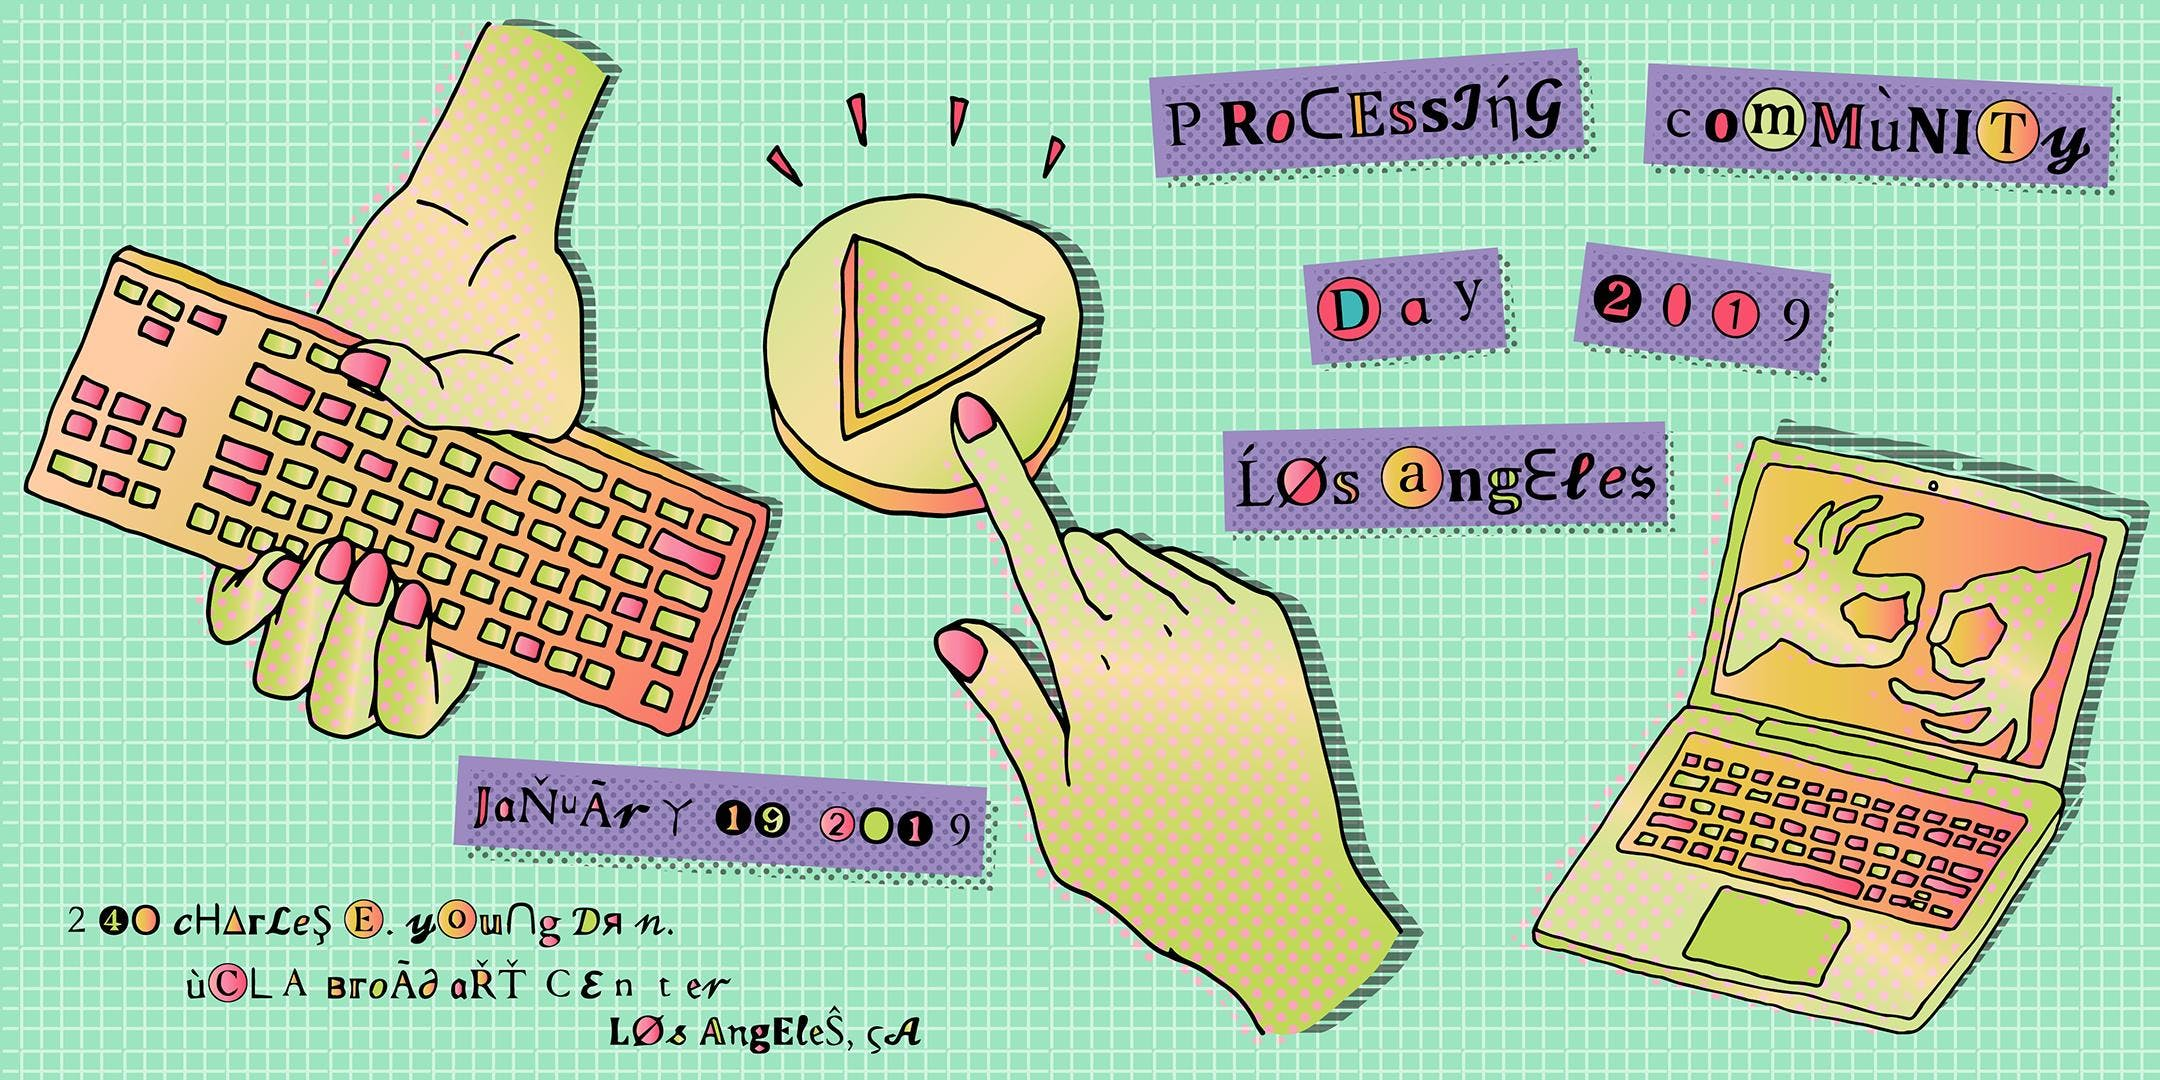 Processing Community Day @ Los Angeles